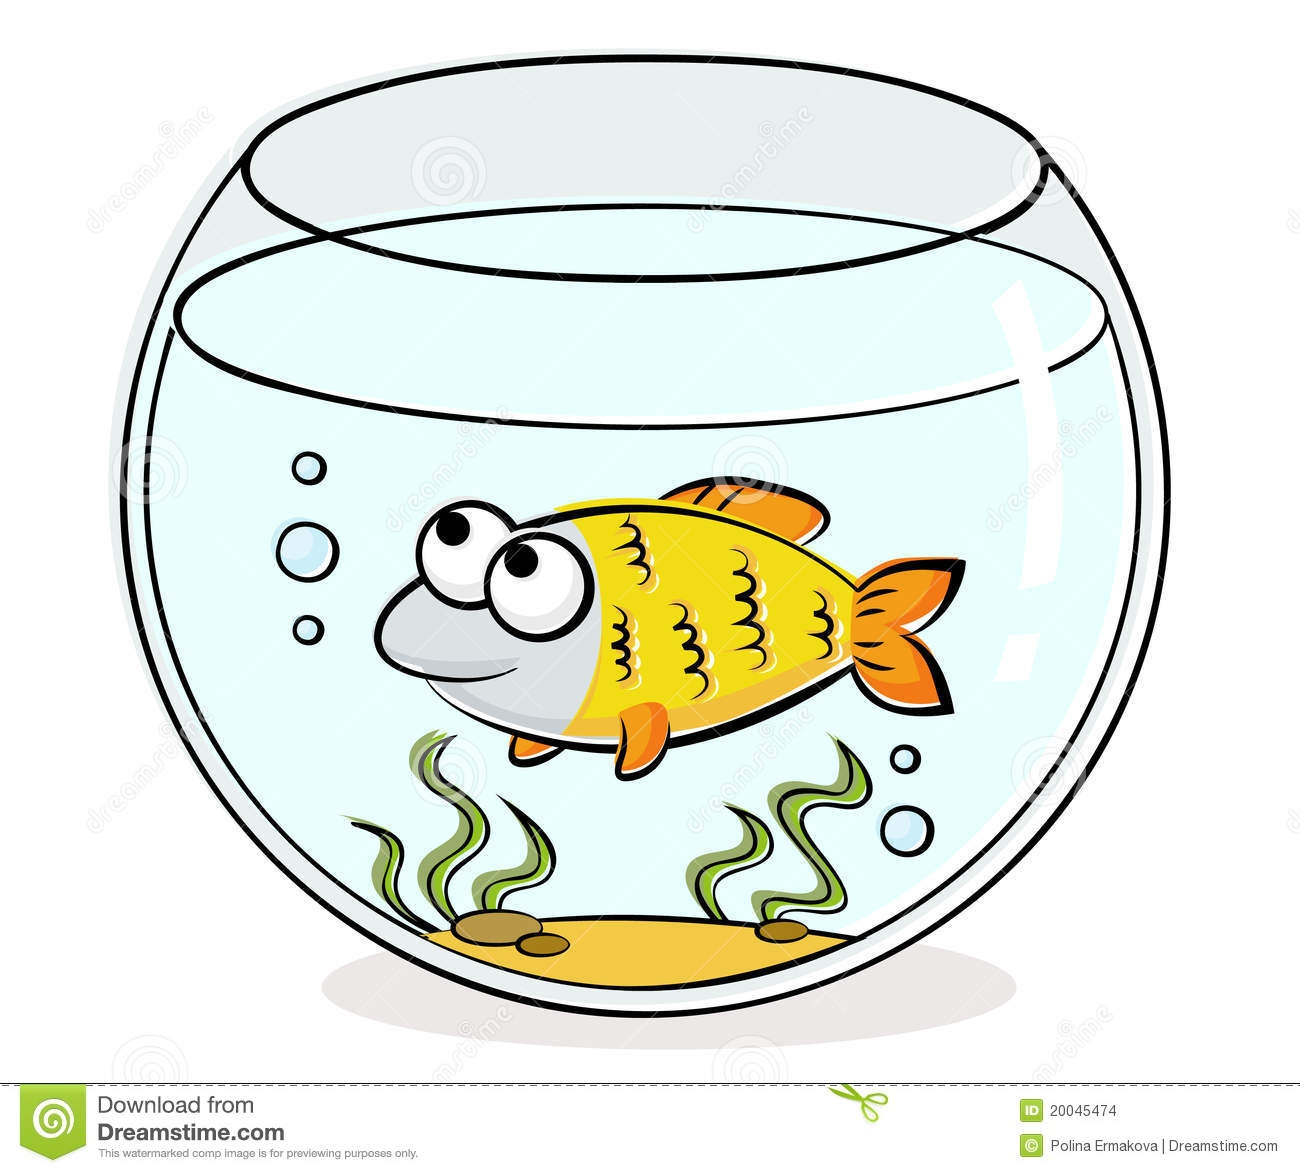 1300x1173 Awesome Fish Bowl Cartoon Images Gallery Free Cartoon Images 2018